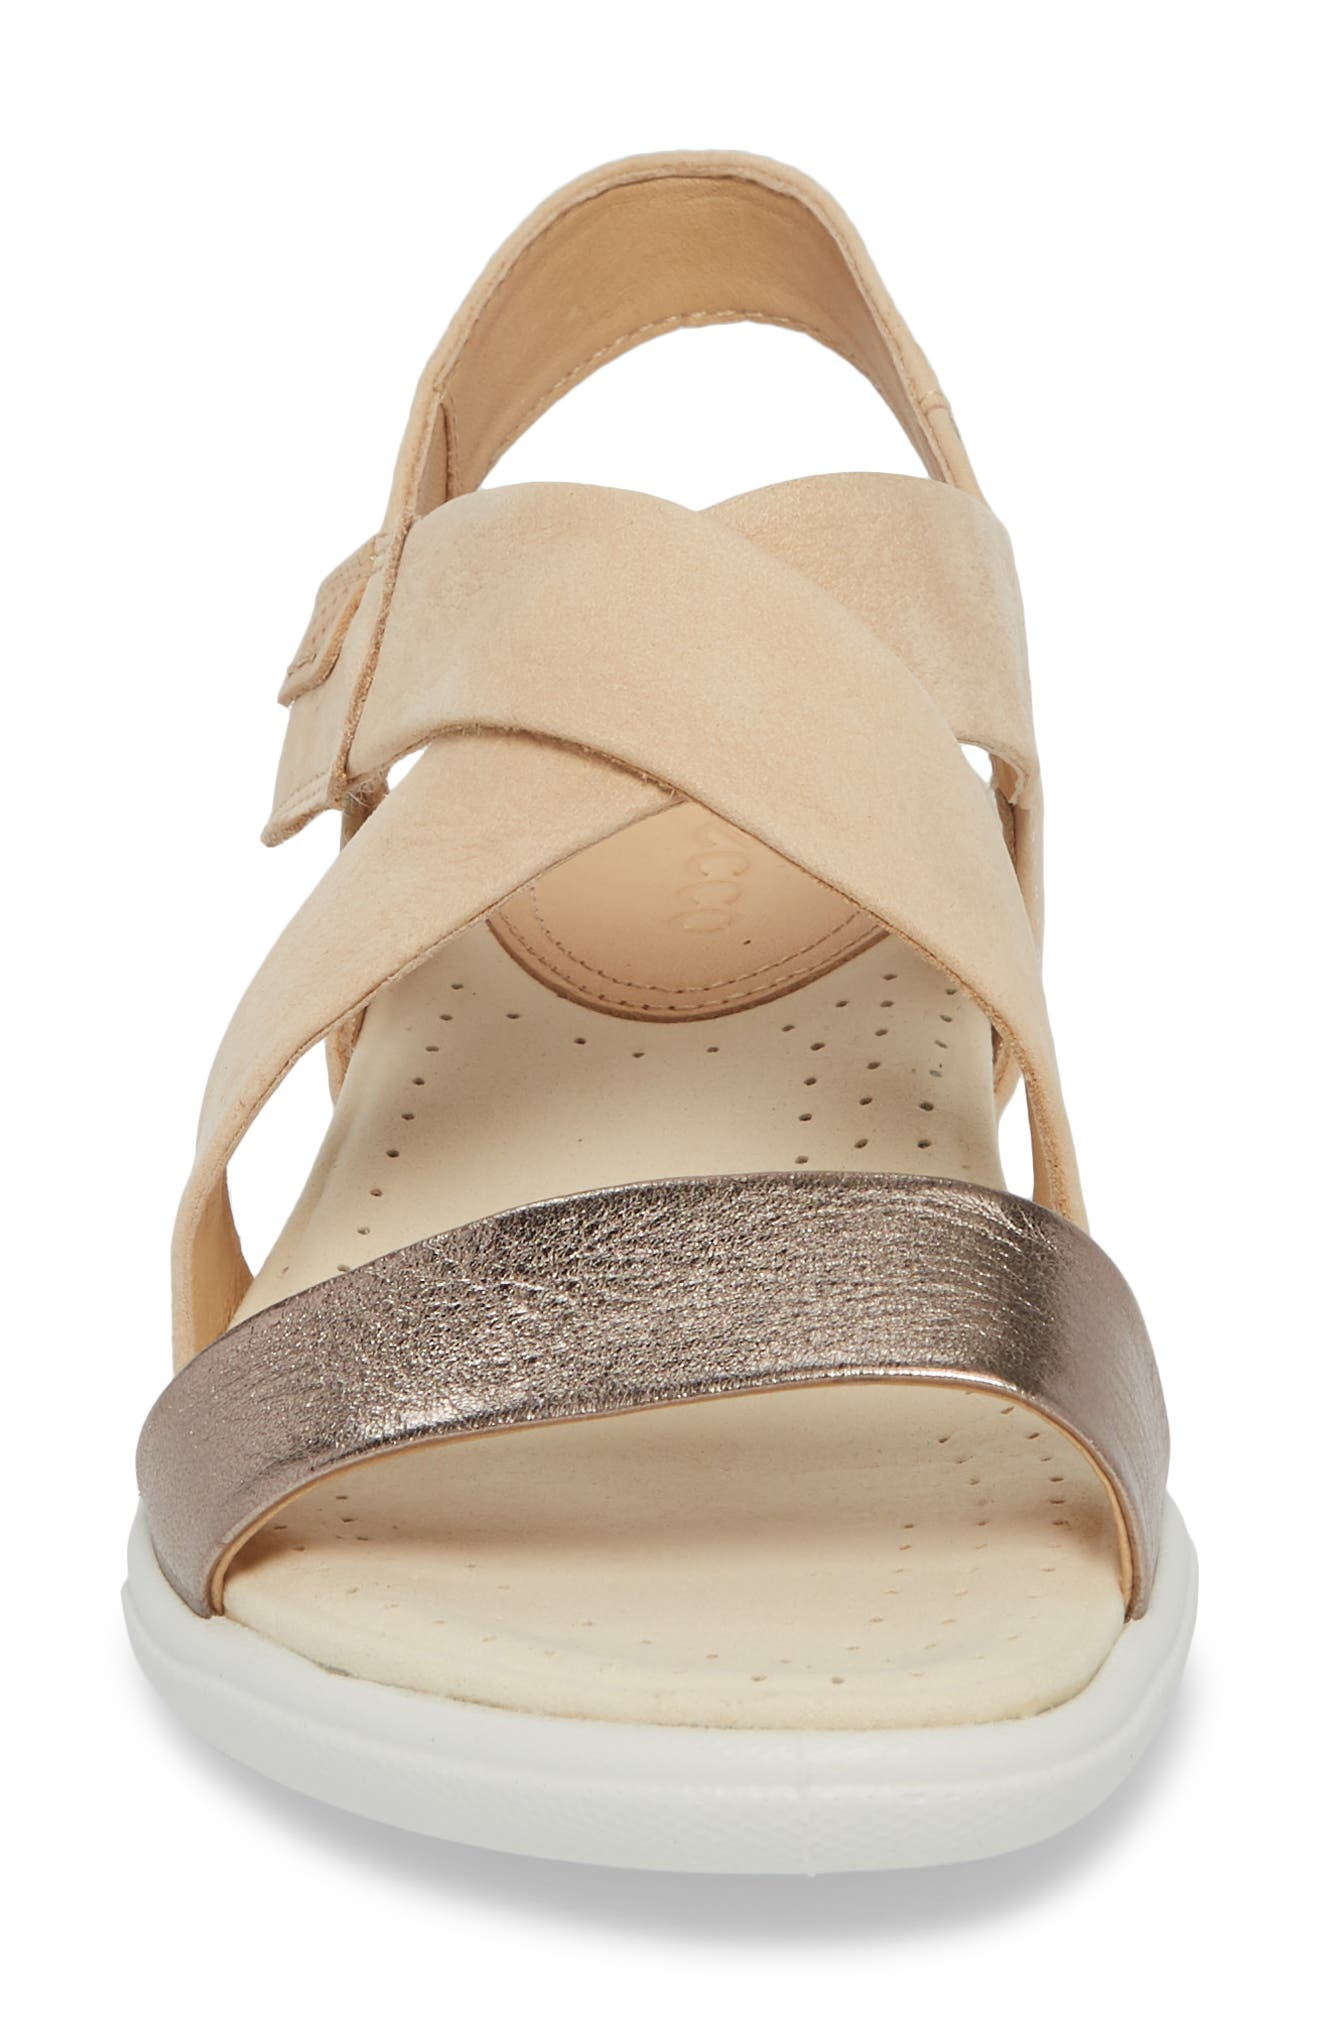 Damara Cross-Strap Sandal,                             Alternate thumbnail 5, color,                             Warm Grey Leather